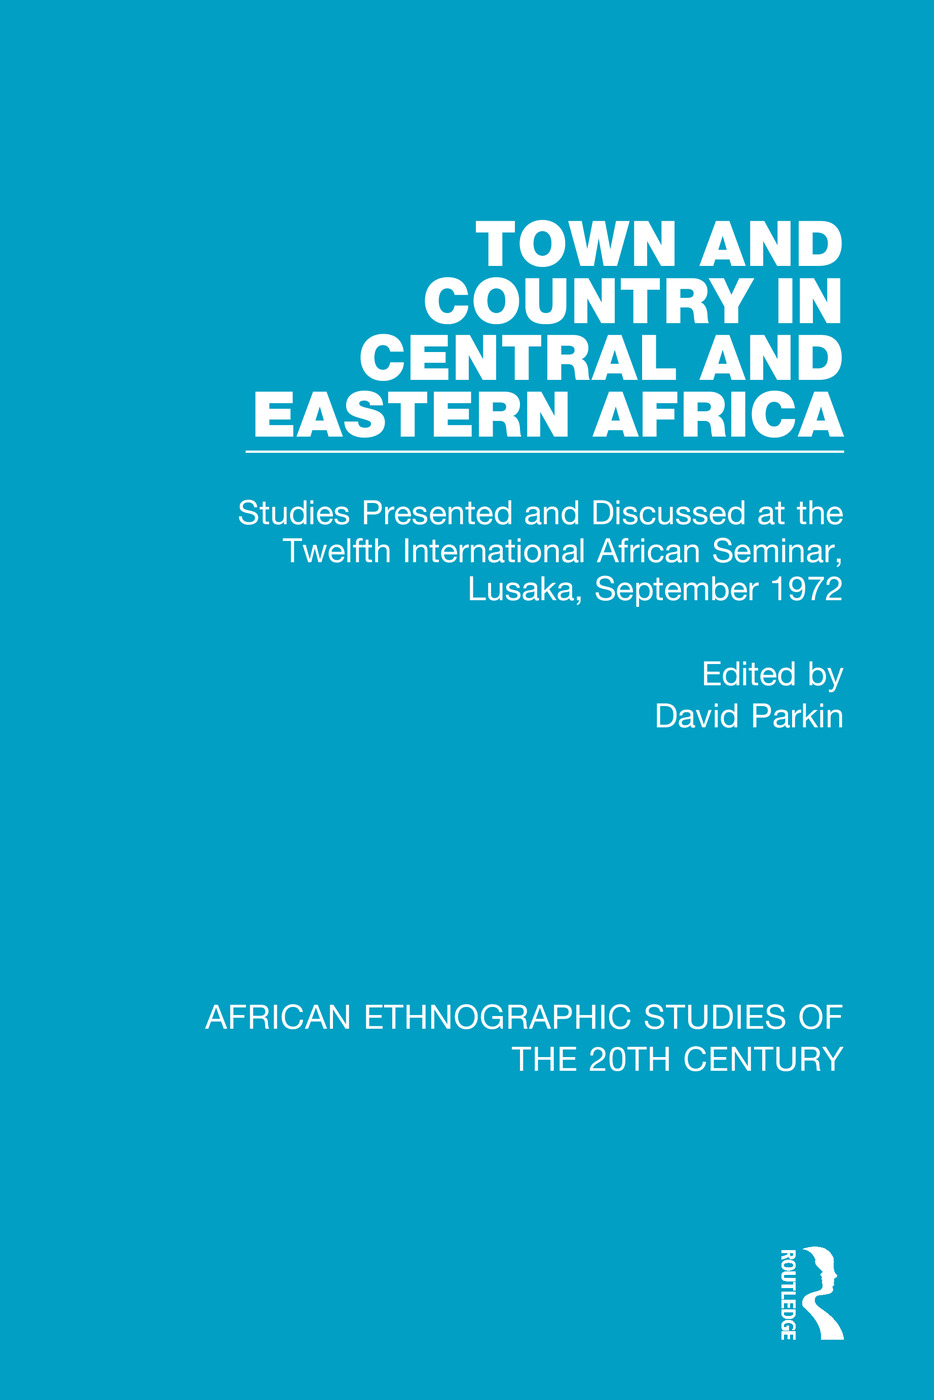 Town and Country in Central and Eastern Africa: Studies Presented and Discussed at the Twelfth International African Seminar, Lusaka, September 1972 book cover